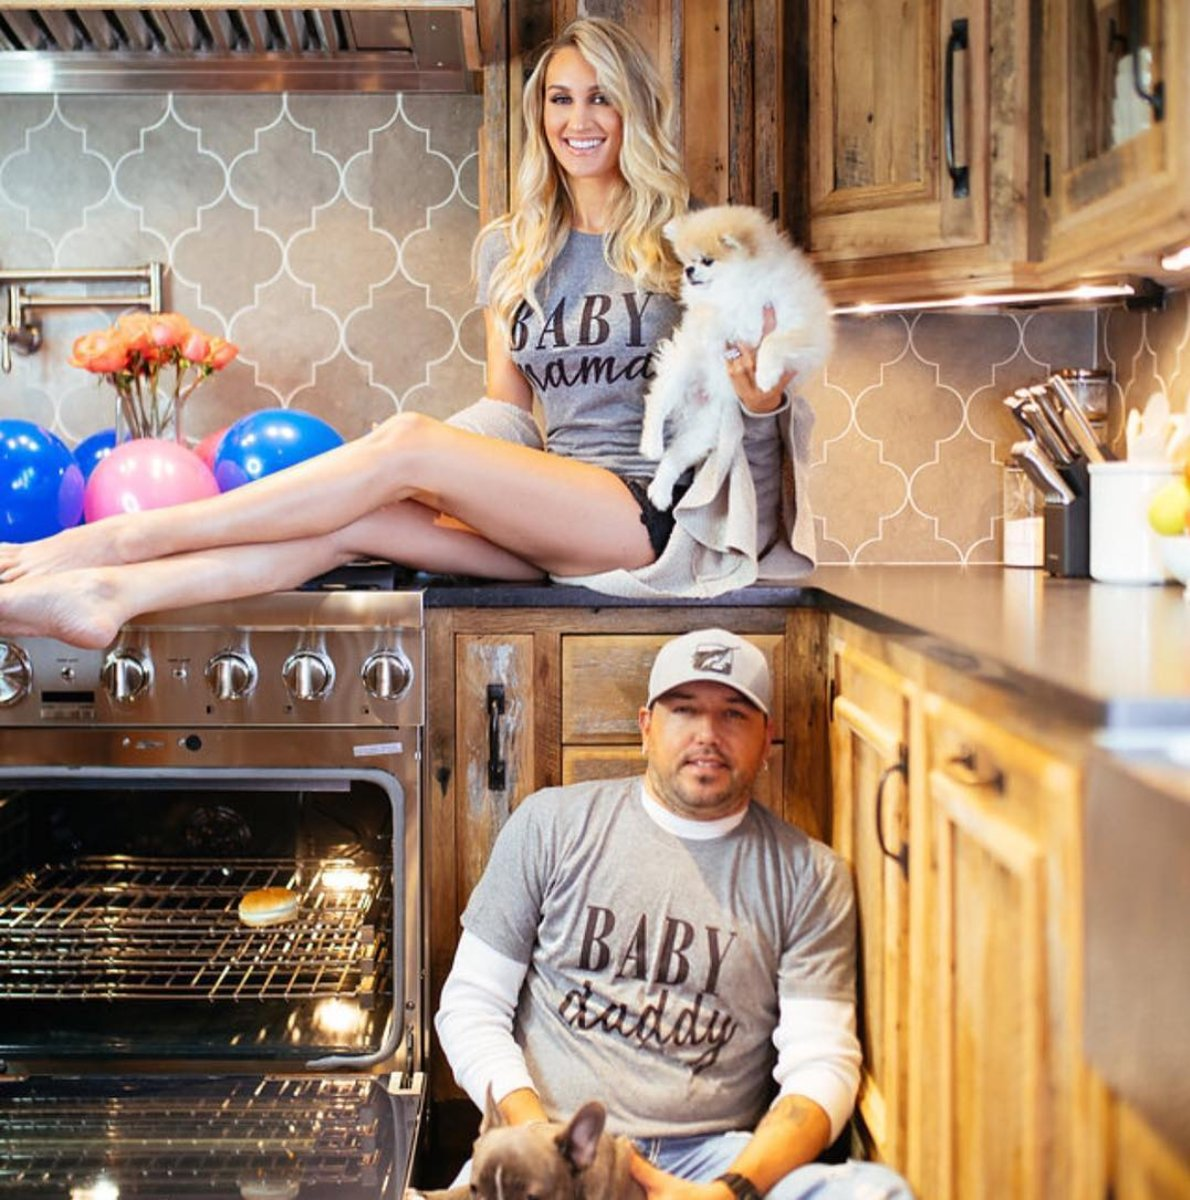 BREAKING: Jason Aldean and Wife, Brittany Having a Baby!